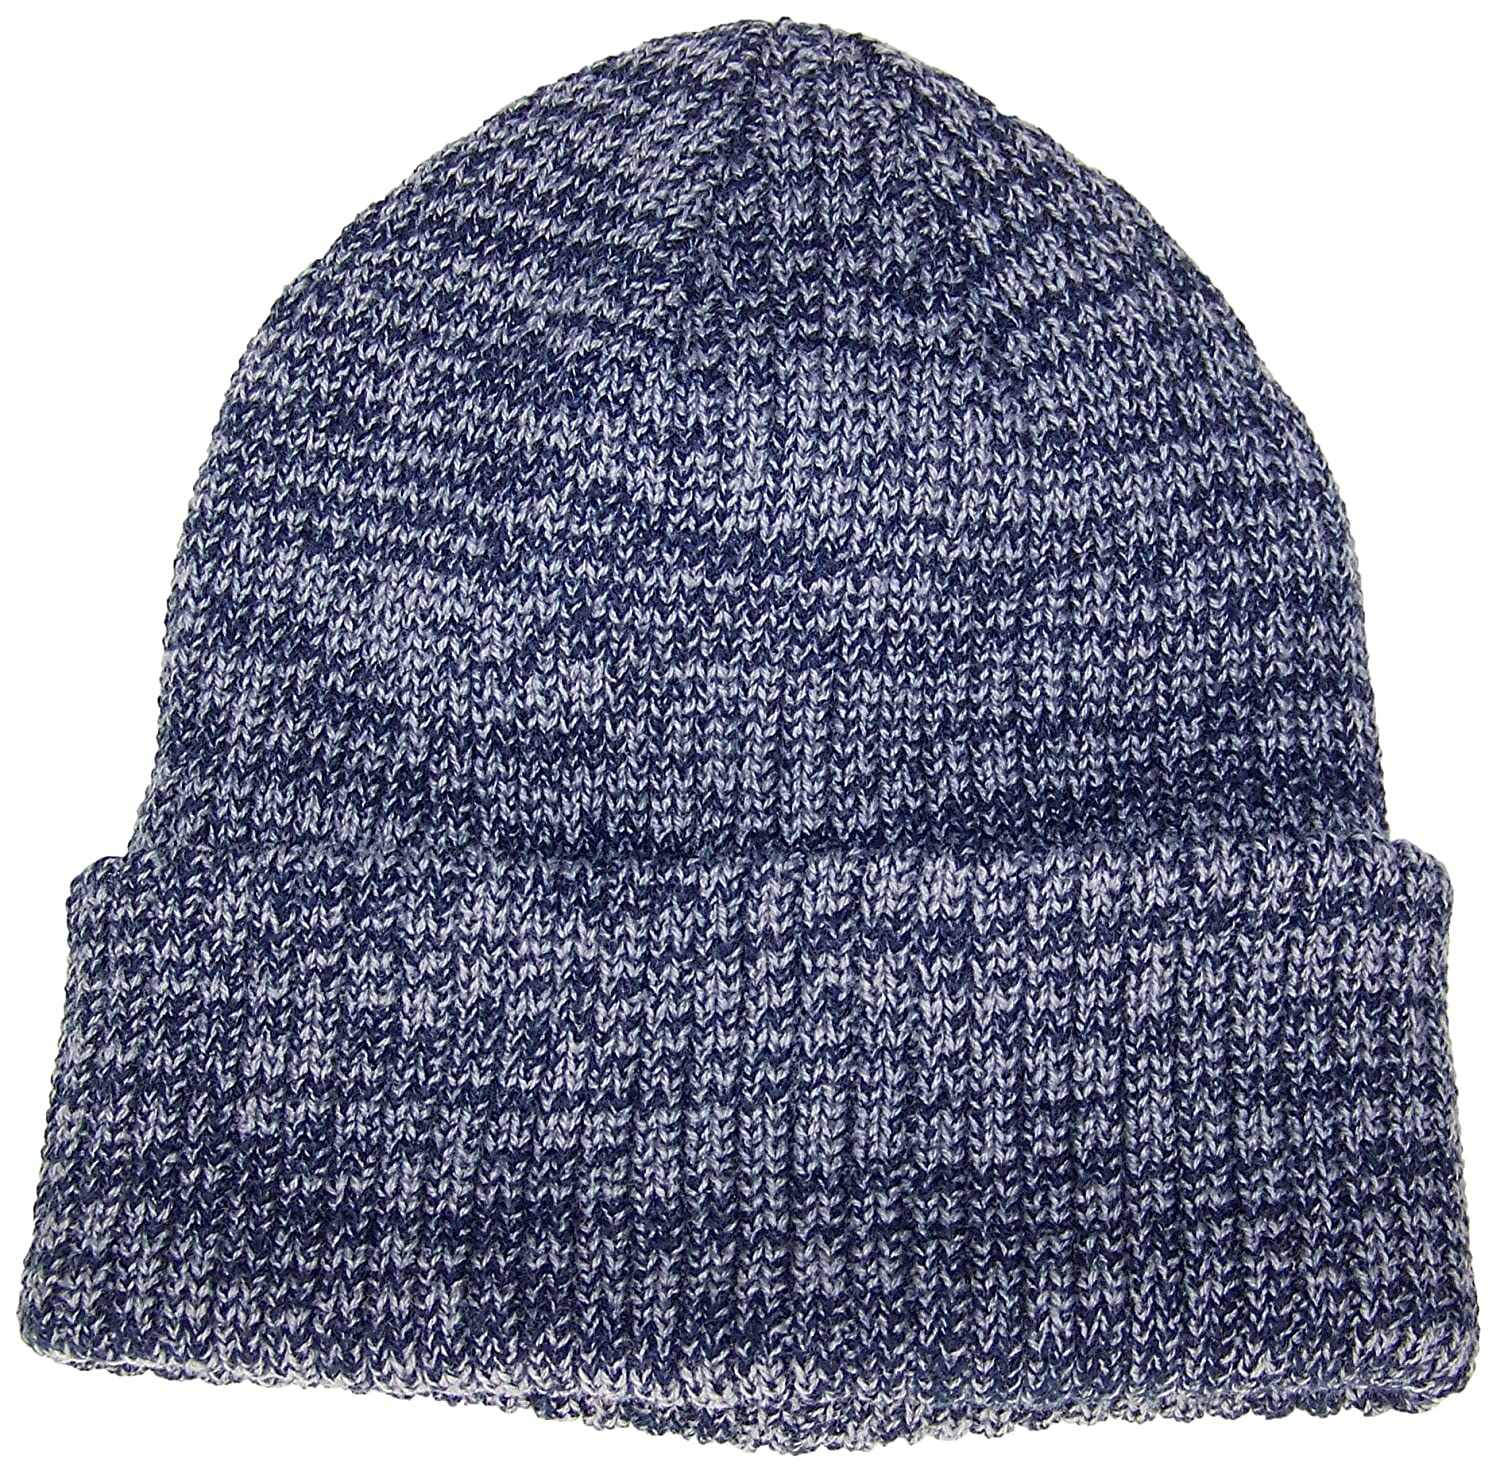 87905ea3346 Best Winter Hats Adult 2 Tone Color Thick W Fleece Lined Cuffed Winter Cap  (One Size) - Blue at Amazon Men s Clothing store